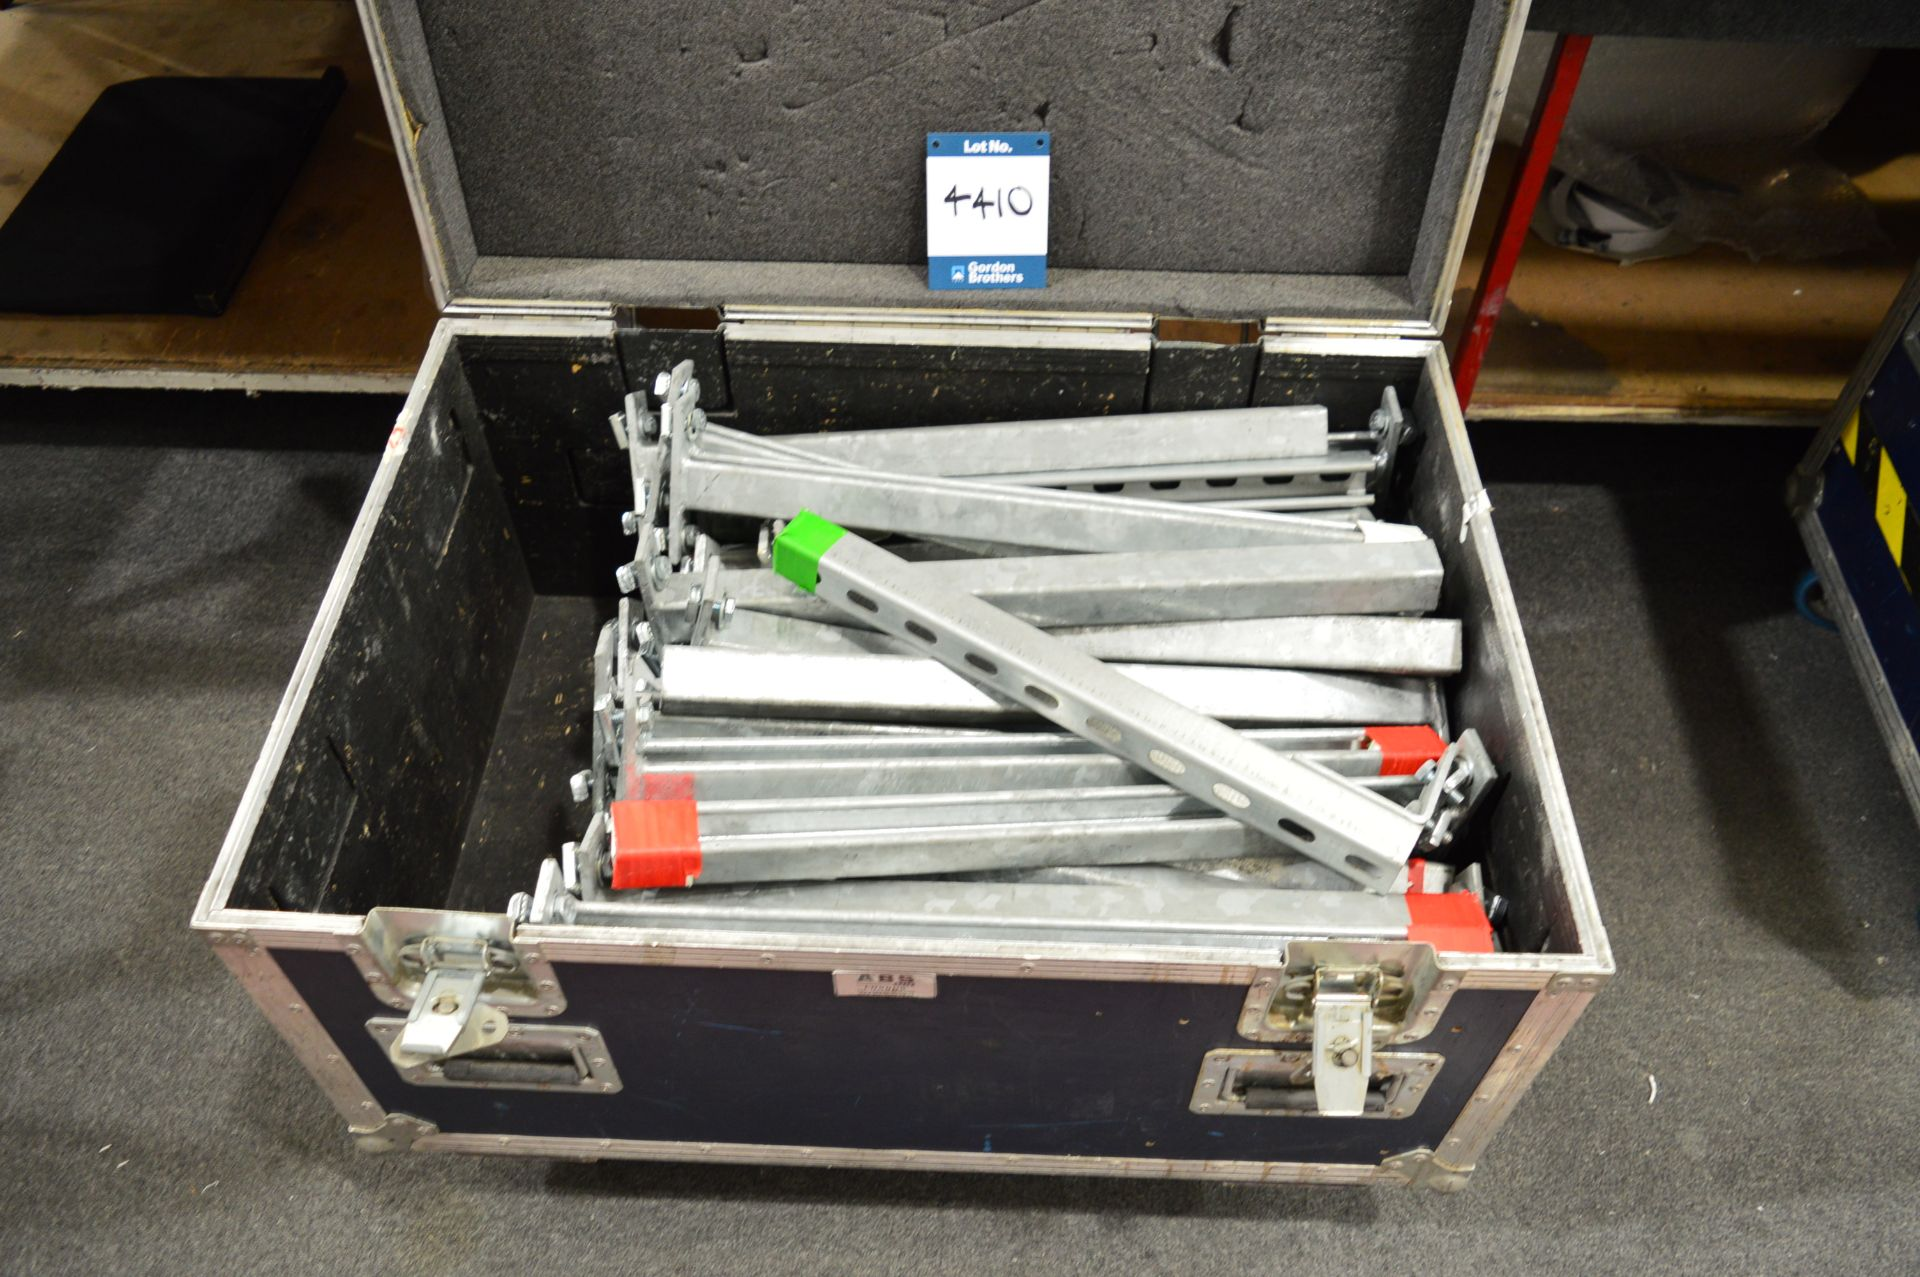 Lot 4410 - Quantity of steel cable brackets in flight case: Unit 500, Eckersall Road, Birmingham B38 8SE